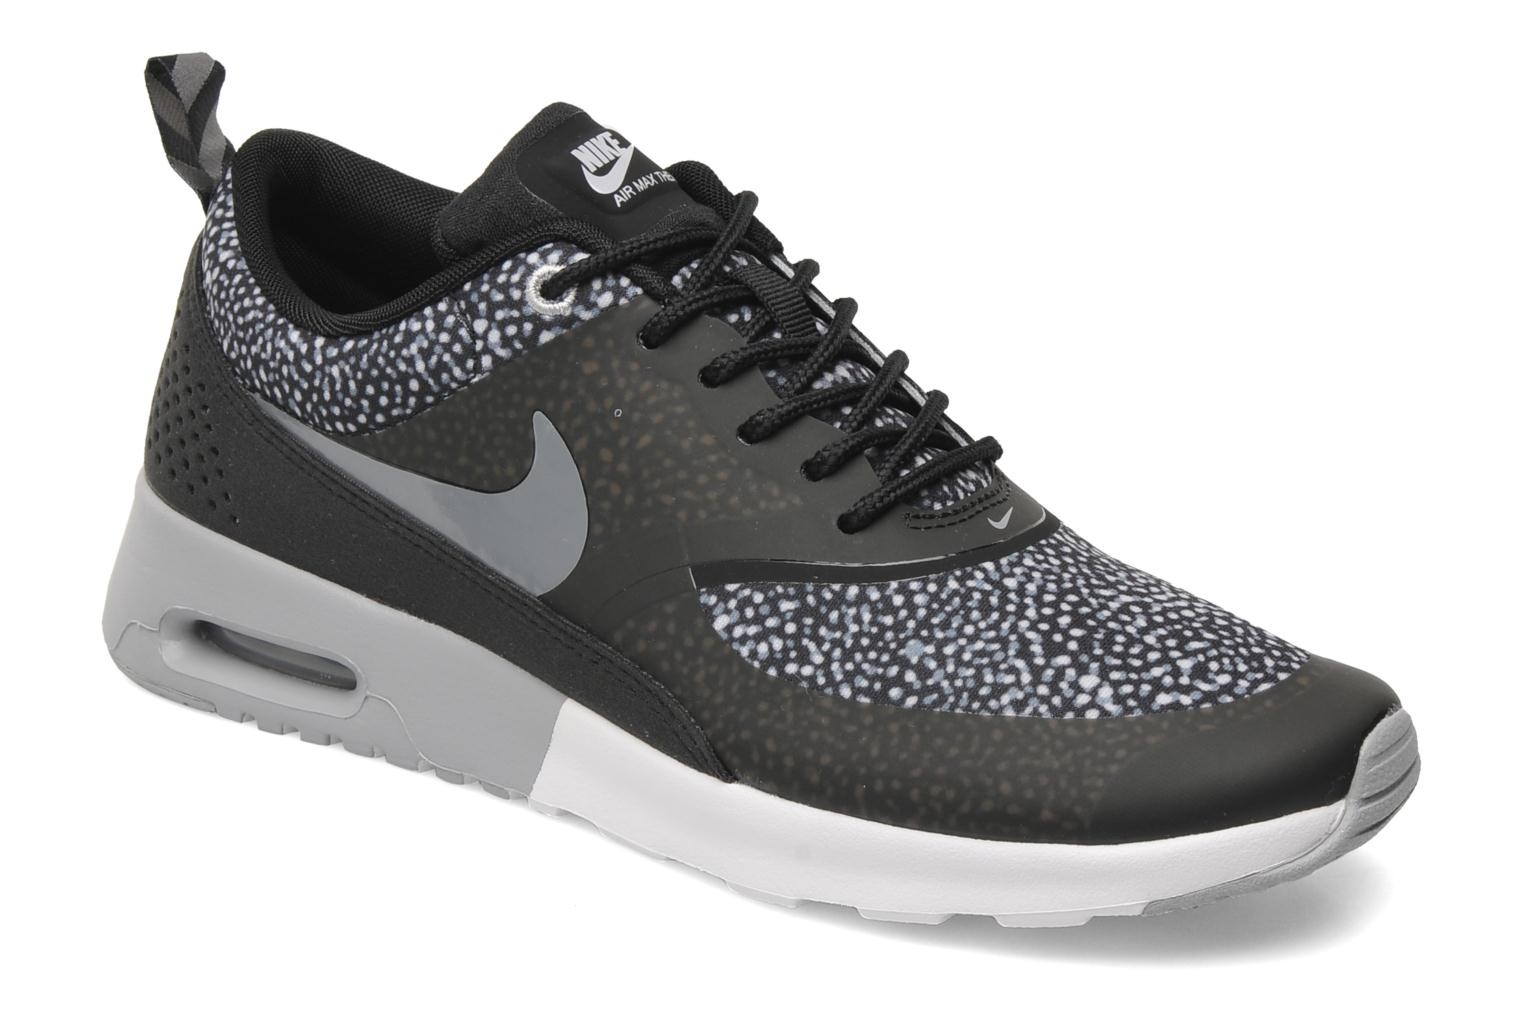 chaussures nike air max thea pas cher, chaussure nike air max thea pas cher, nike air max thea pas cher femme